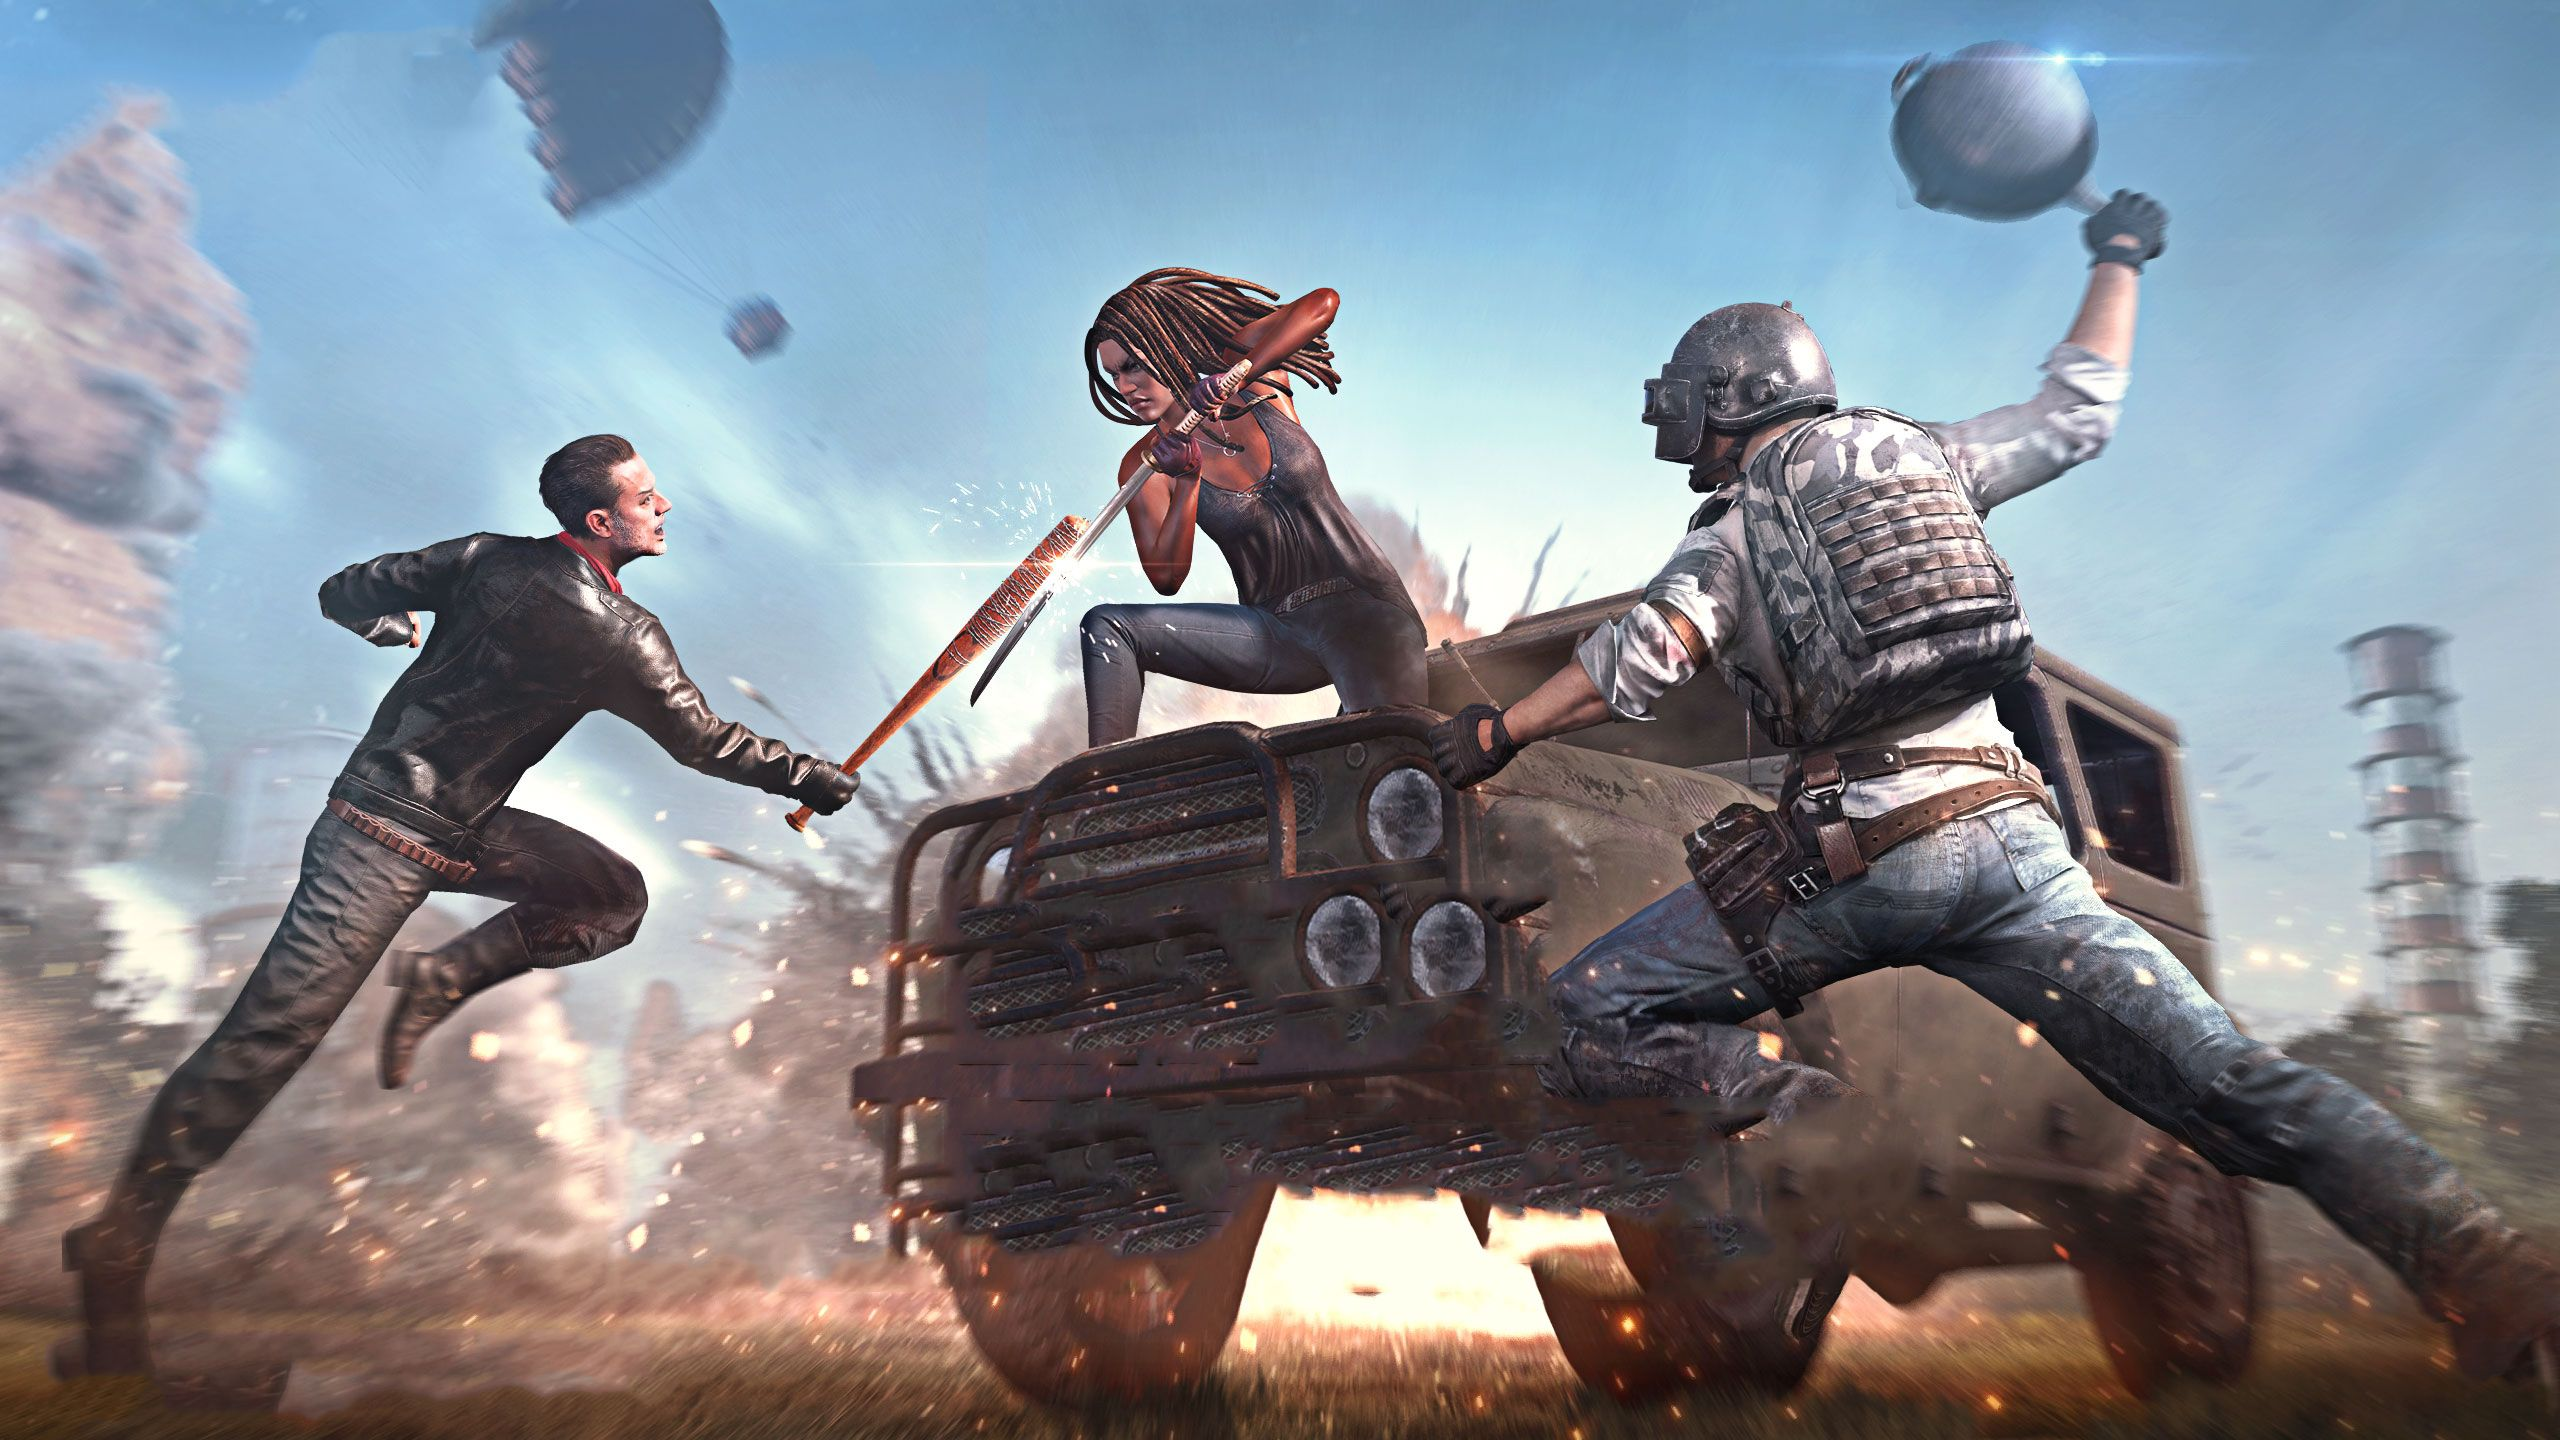 Video Game Playerunknowns Battlegrounds Playerunknowns Battlegrounds Hd Wallpaper Wallpaper Cart Mobile Game Mobile Generator Ios Games